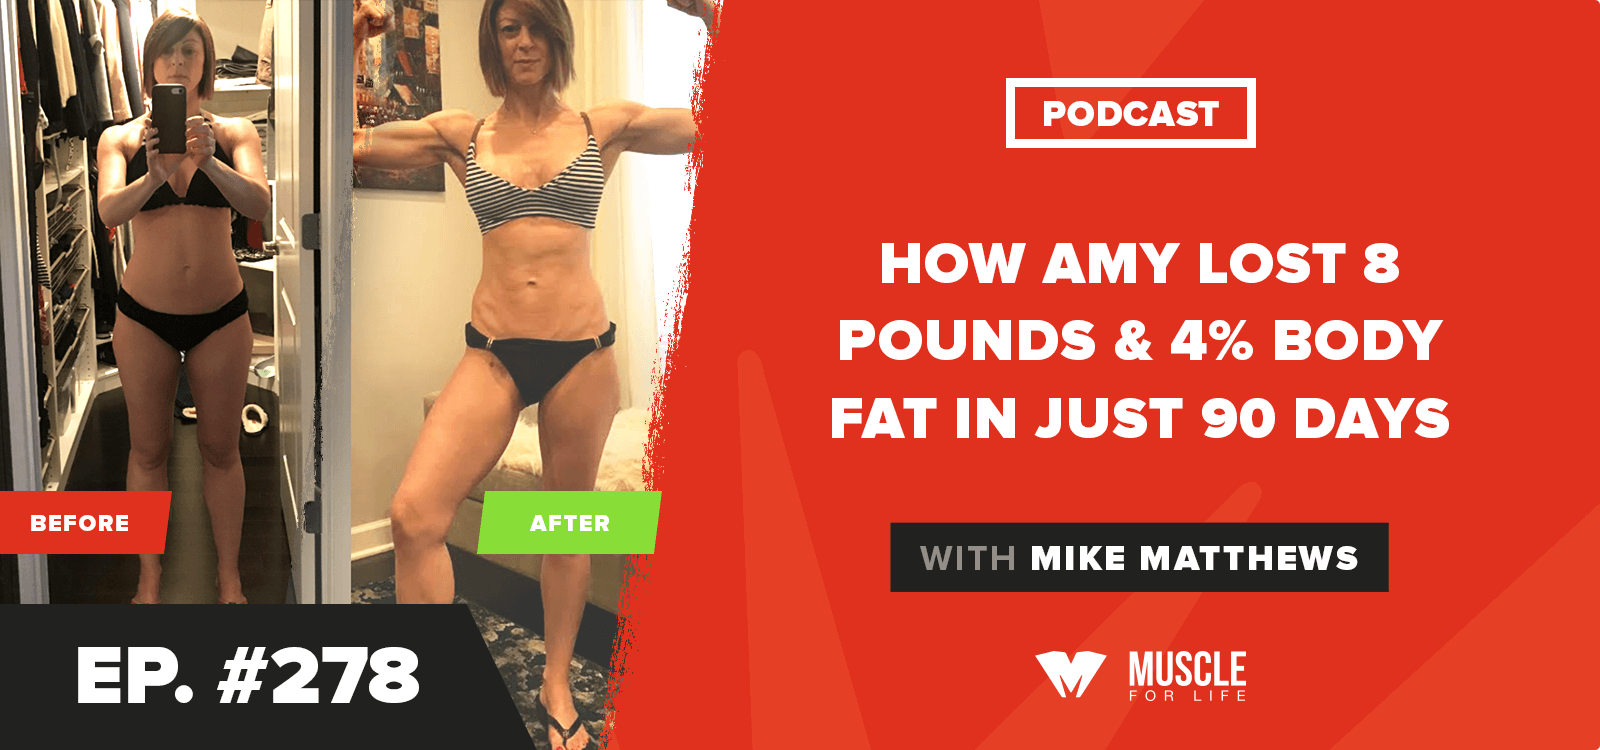 How Amy Lost 8 Pounds & 4% Body Fat In Just 90 Days